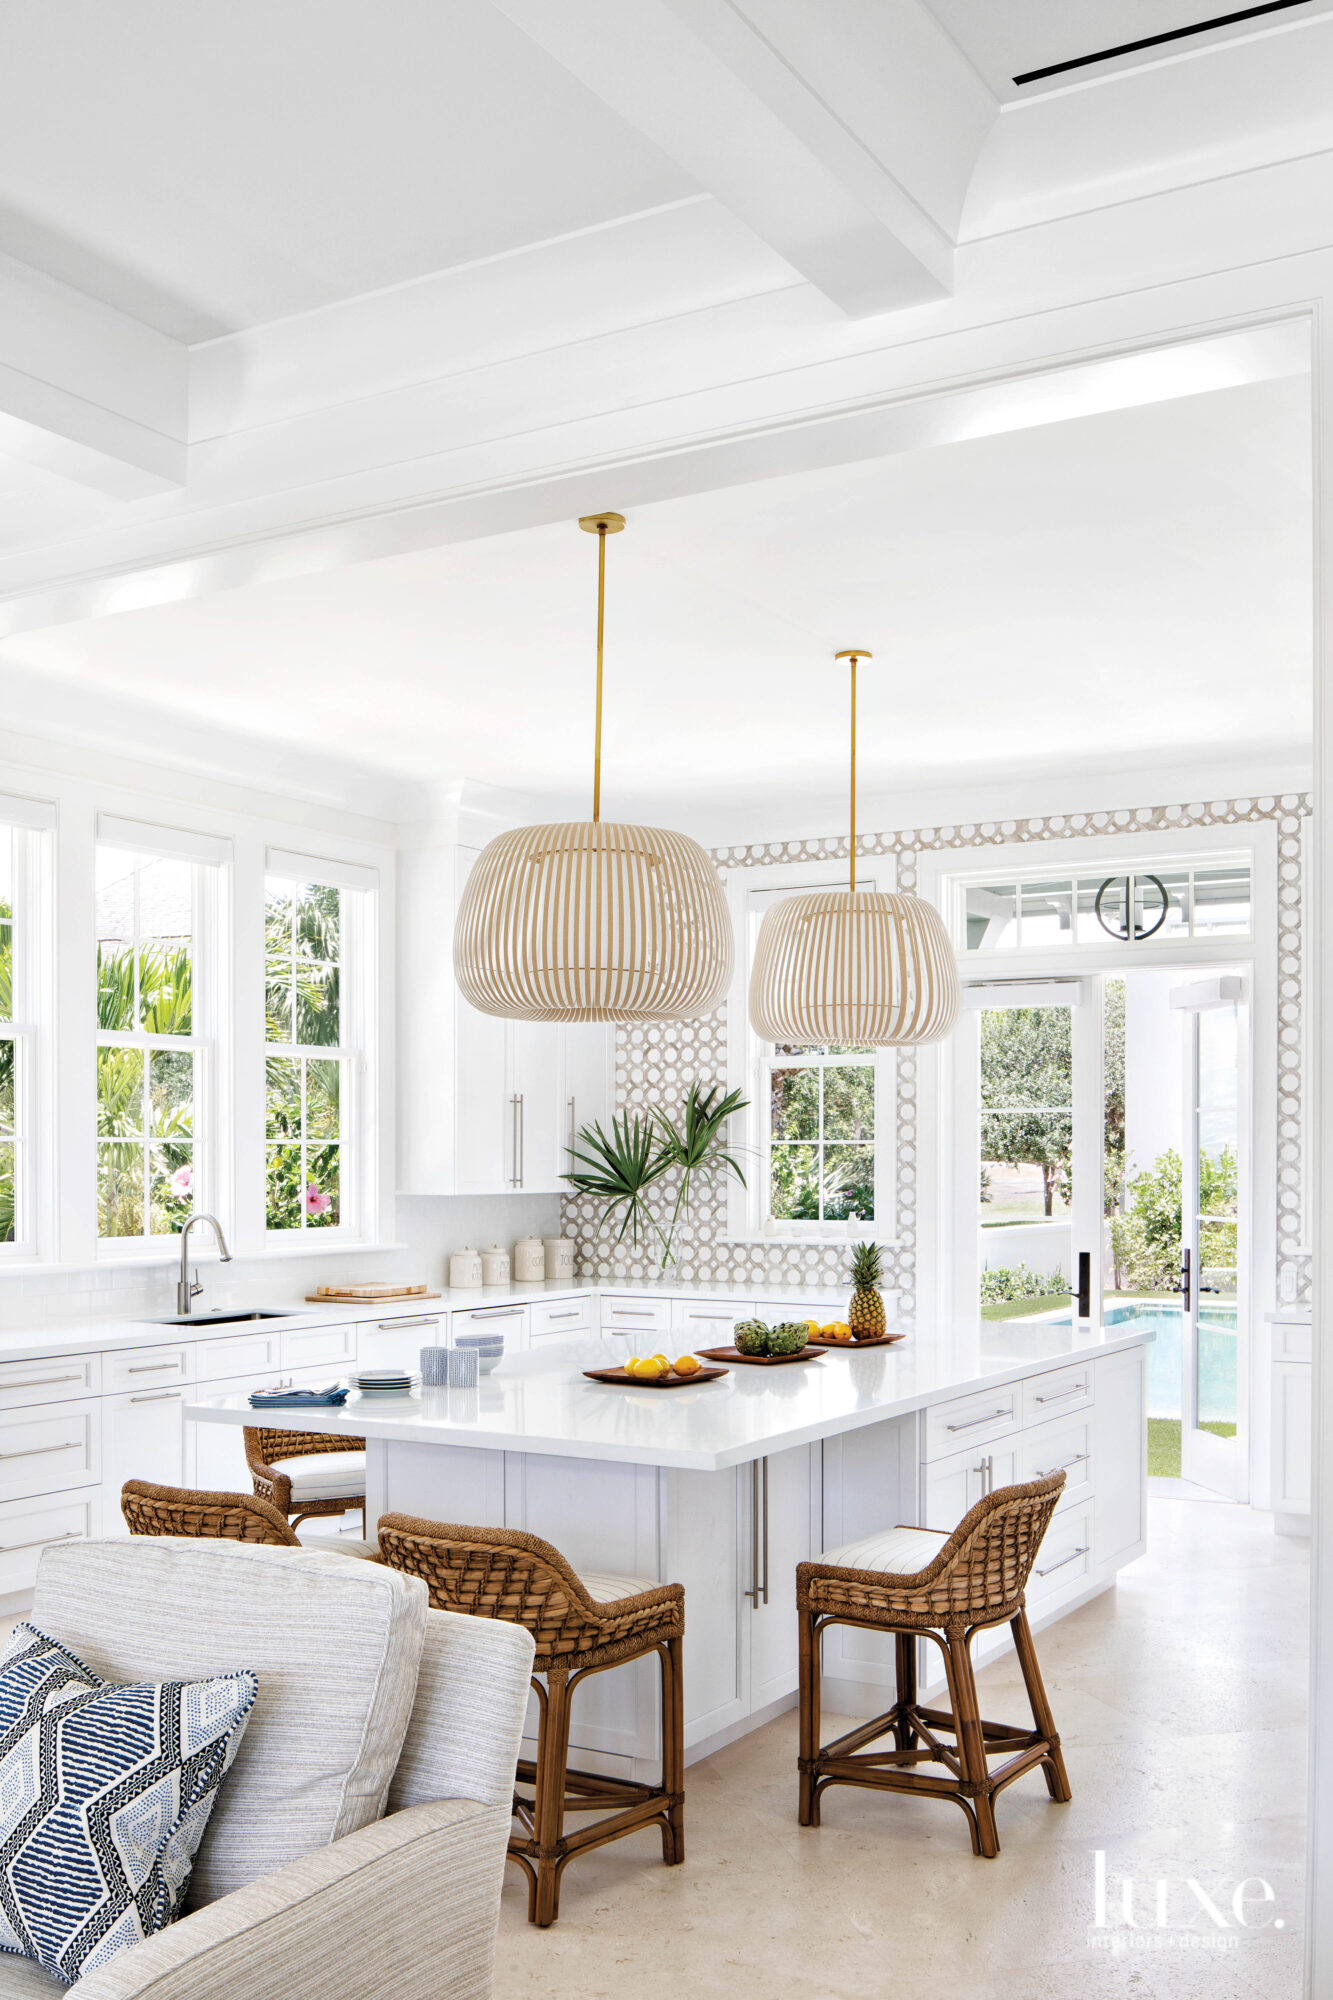 White kitchen with pendant lights made of cotton strips and seagrass stools.